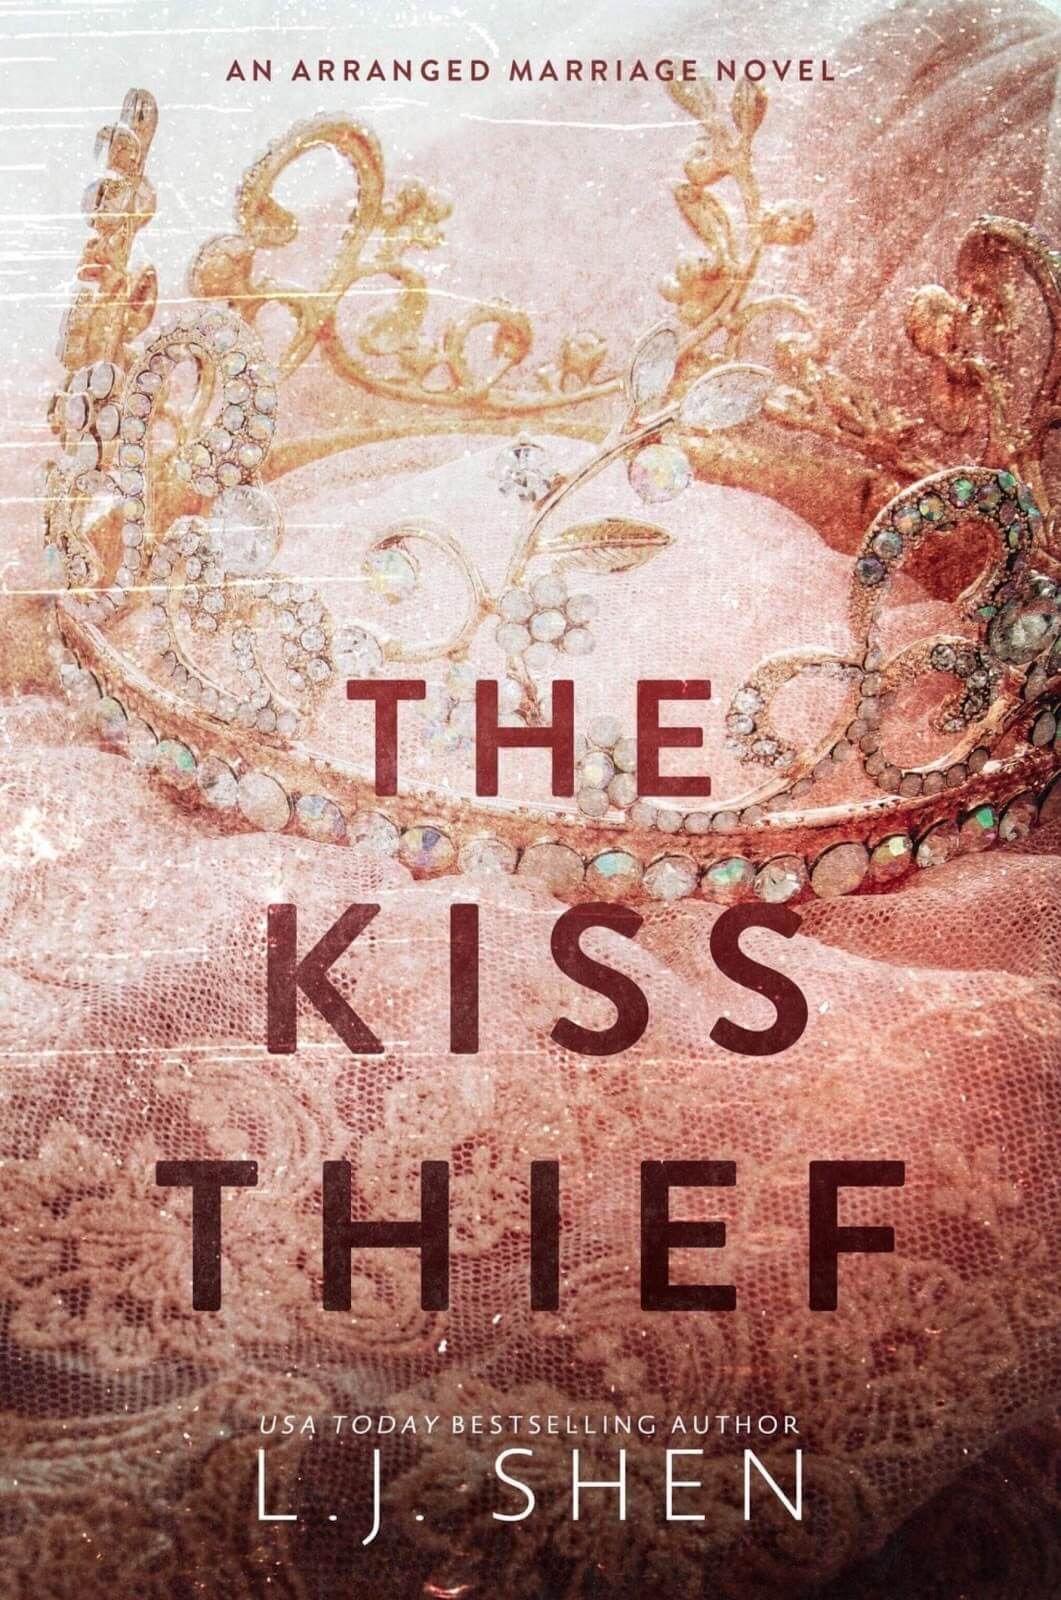 Cover & Blurb Reveal * The Kiss Thief by LJ Shen * Coming